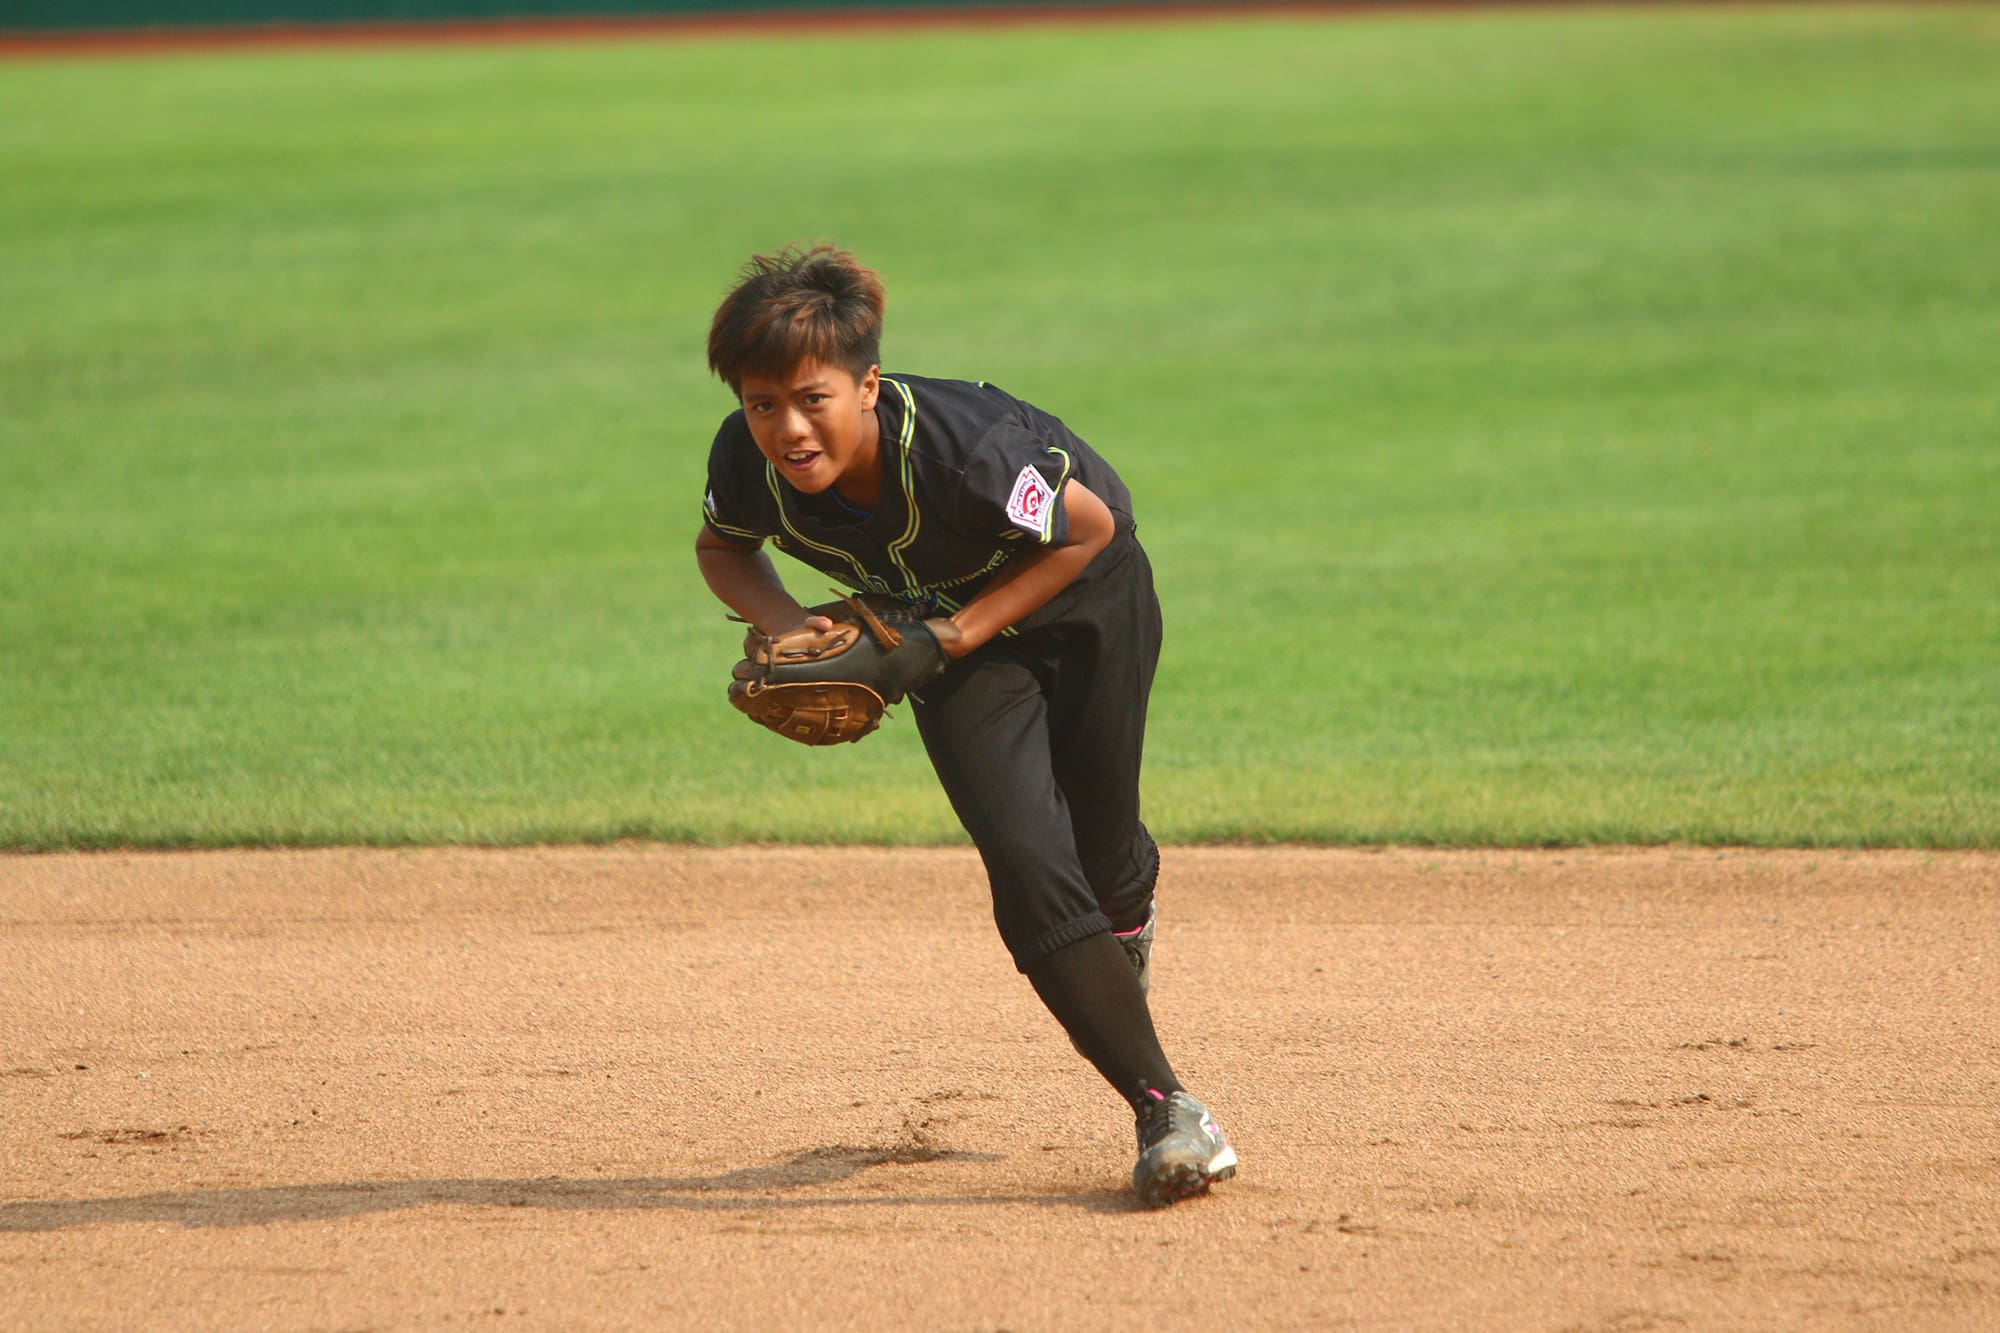 softball player throwing ball